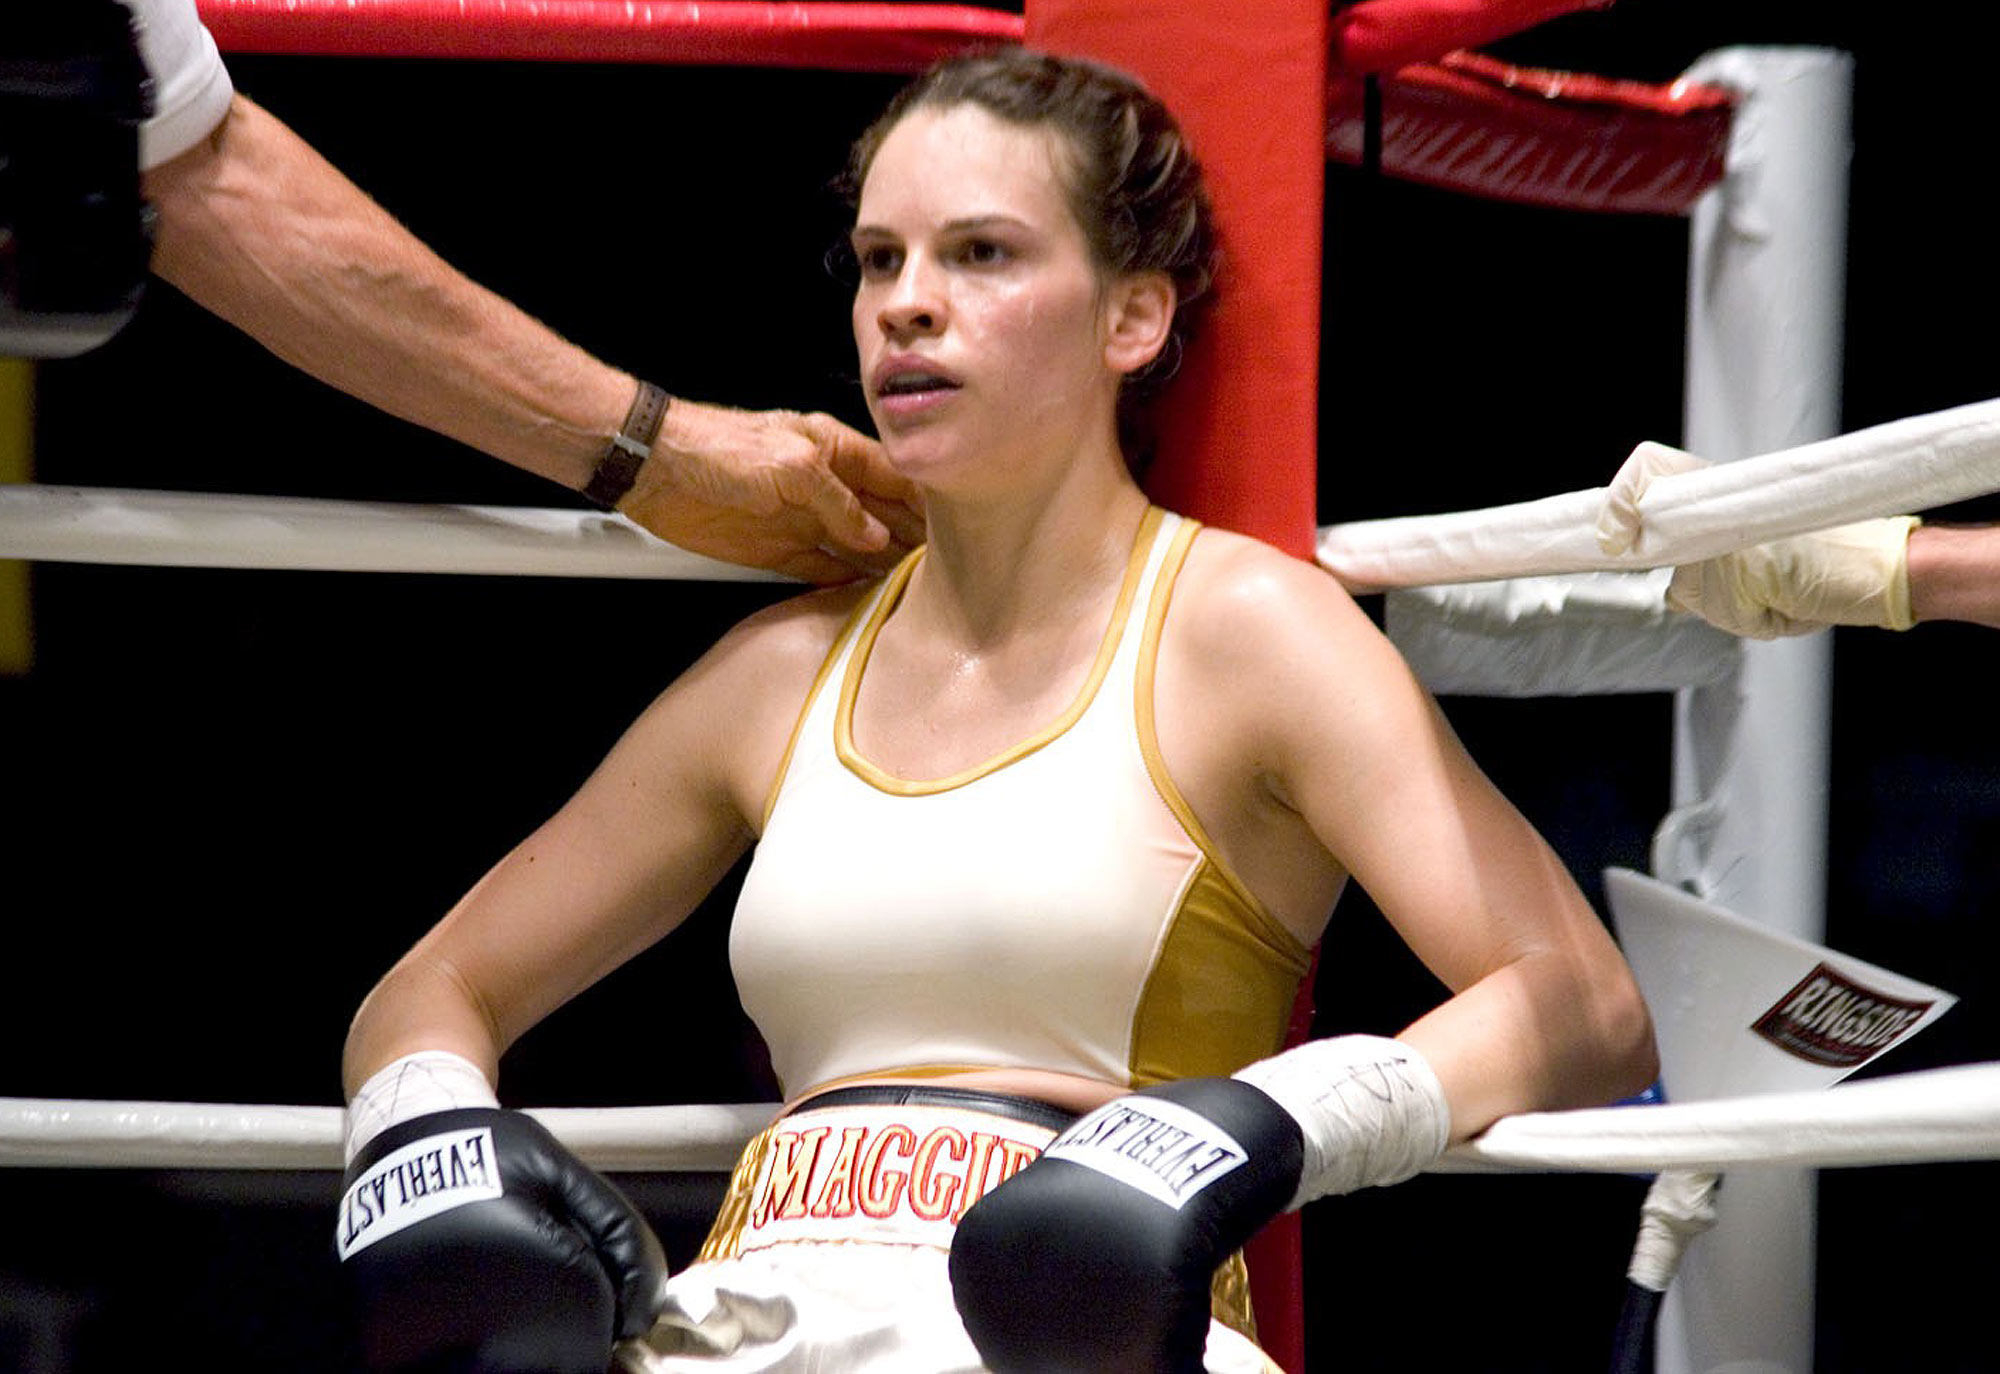 MILLION DOLLAR BABY, Hilary Swank, 2004, (c) Warner Brothers/courtesy Everett Collection